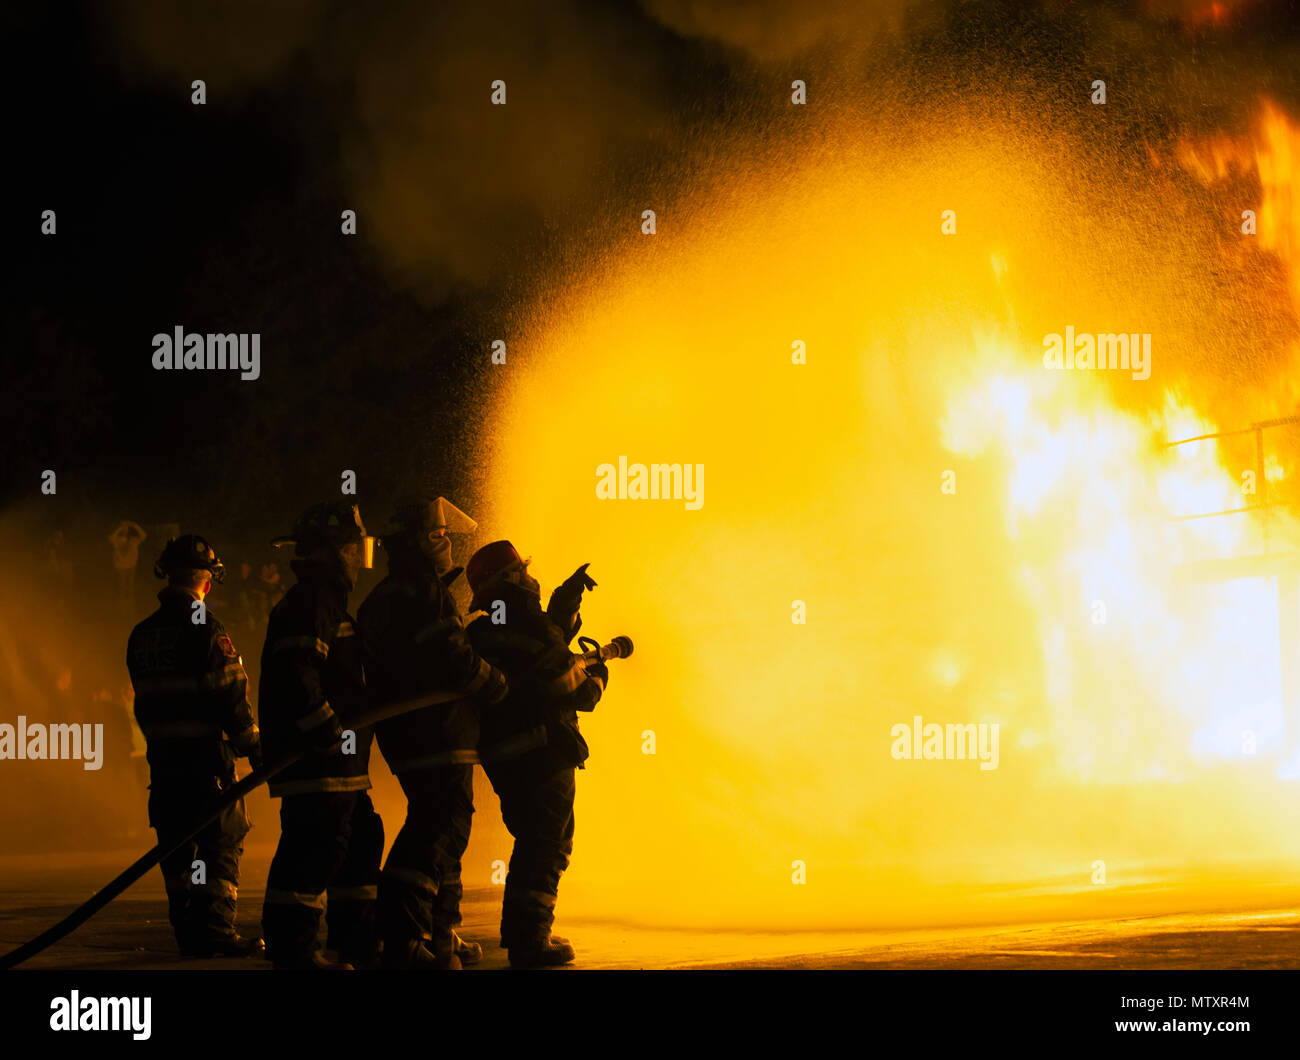 JOHANNESBURG, SOUTH AFRICA - MAY, 2018 Firefighters pointing towards fire during fighting training exercise Stock Photo